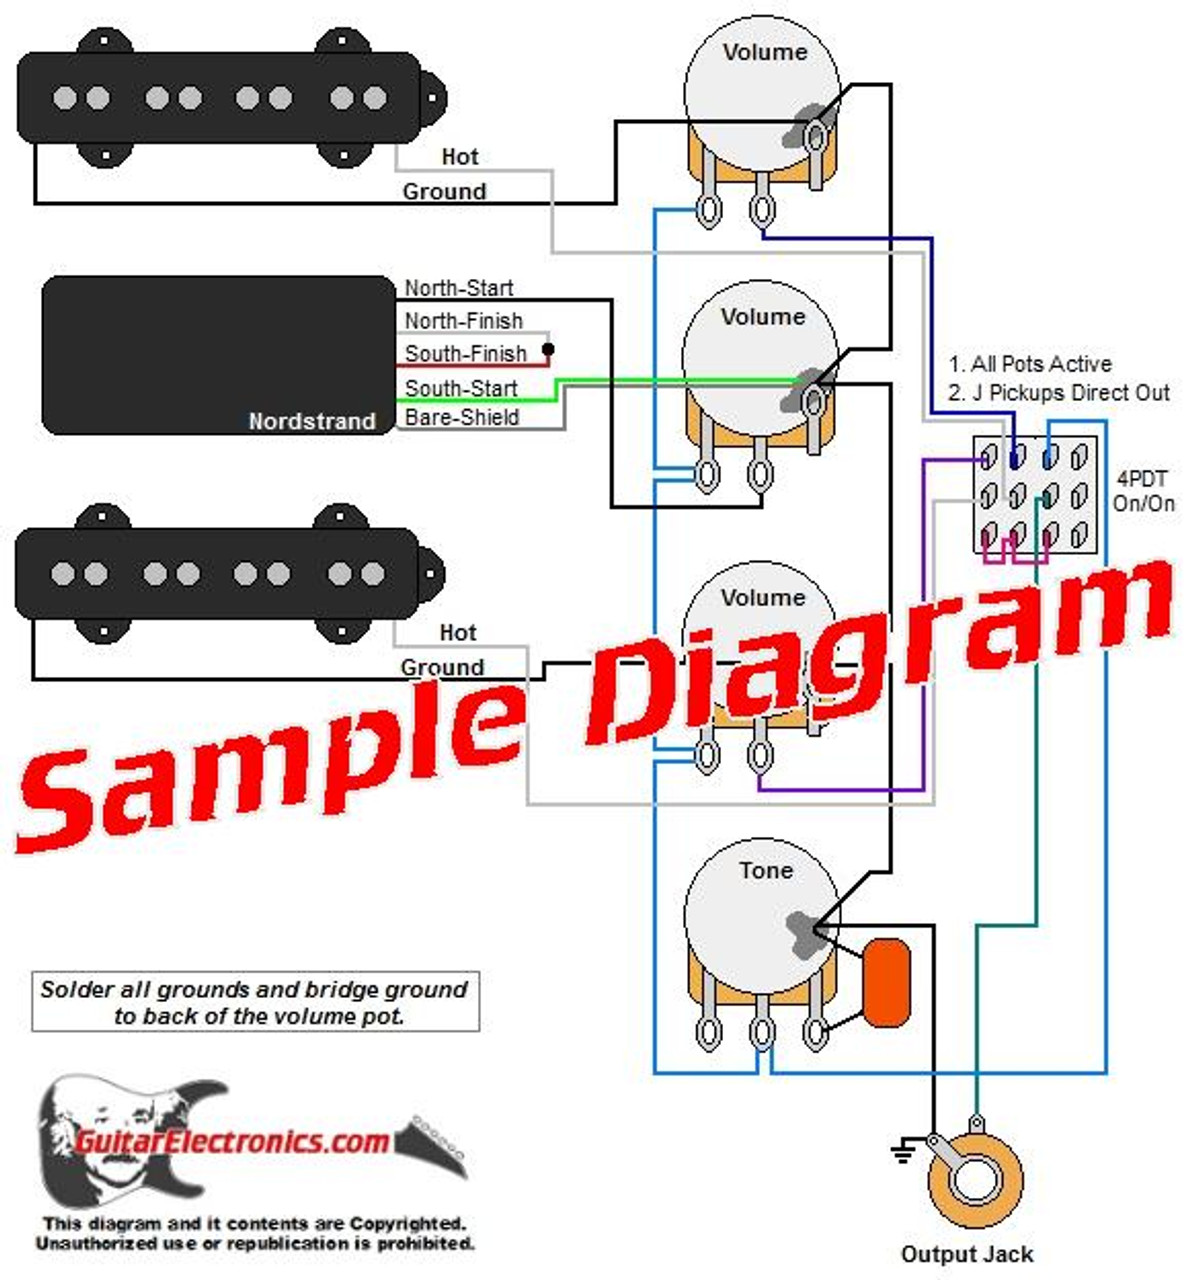 3 Pickup Custom Designed Guitar Wiring Diagrams | Guitar Electronics Wiring Diagrams |  | Guitar Electronics